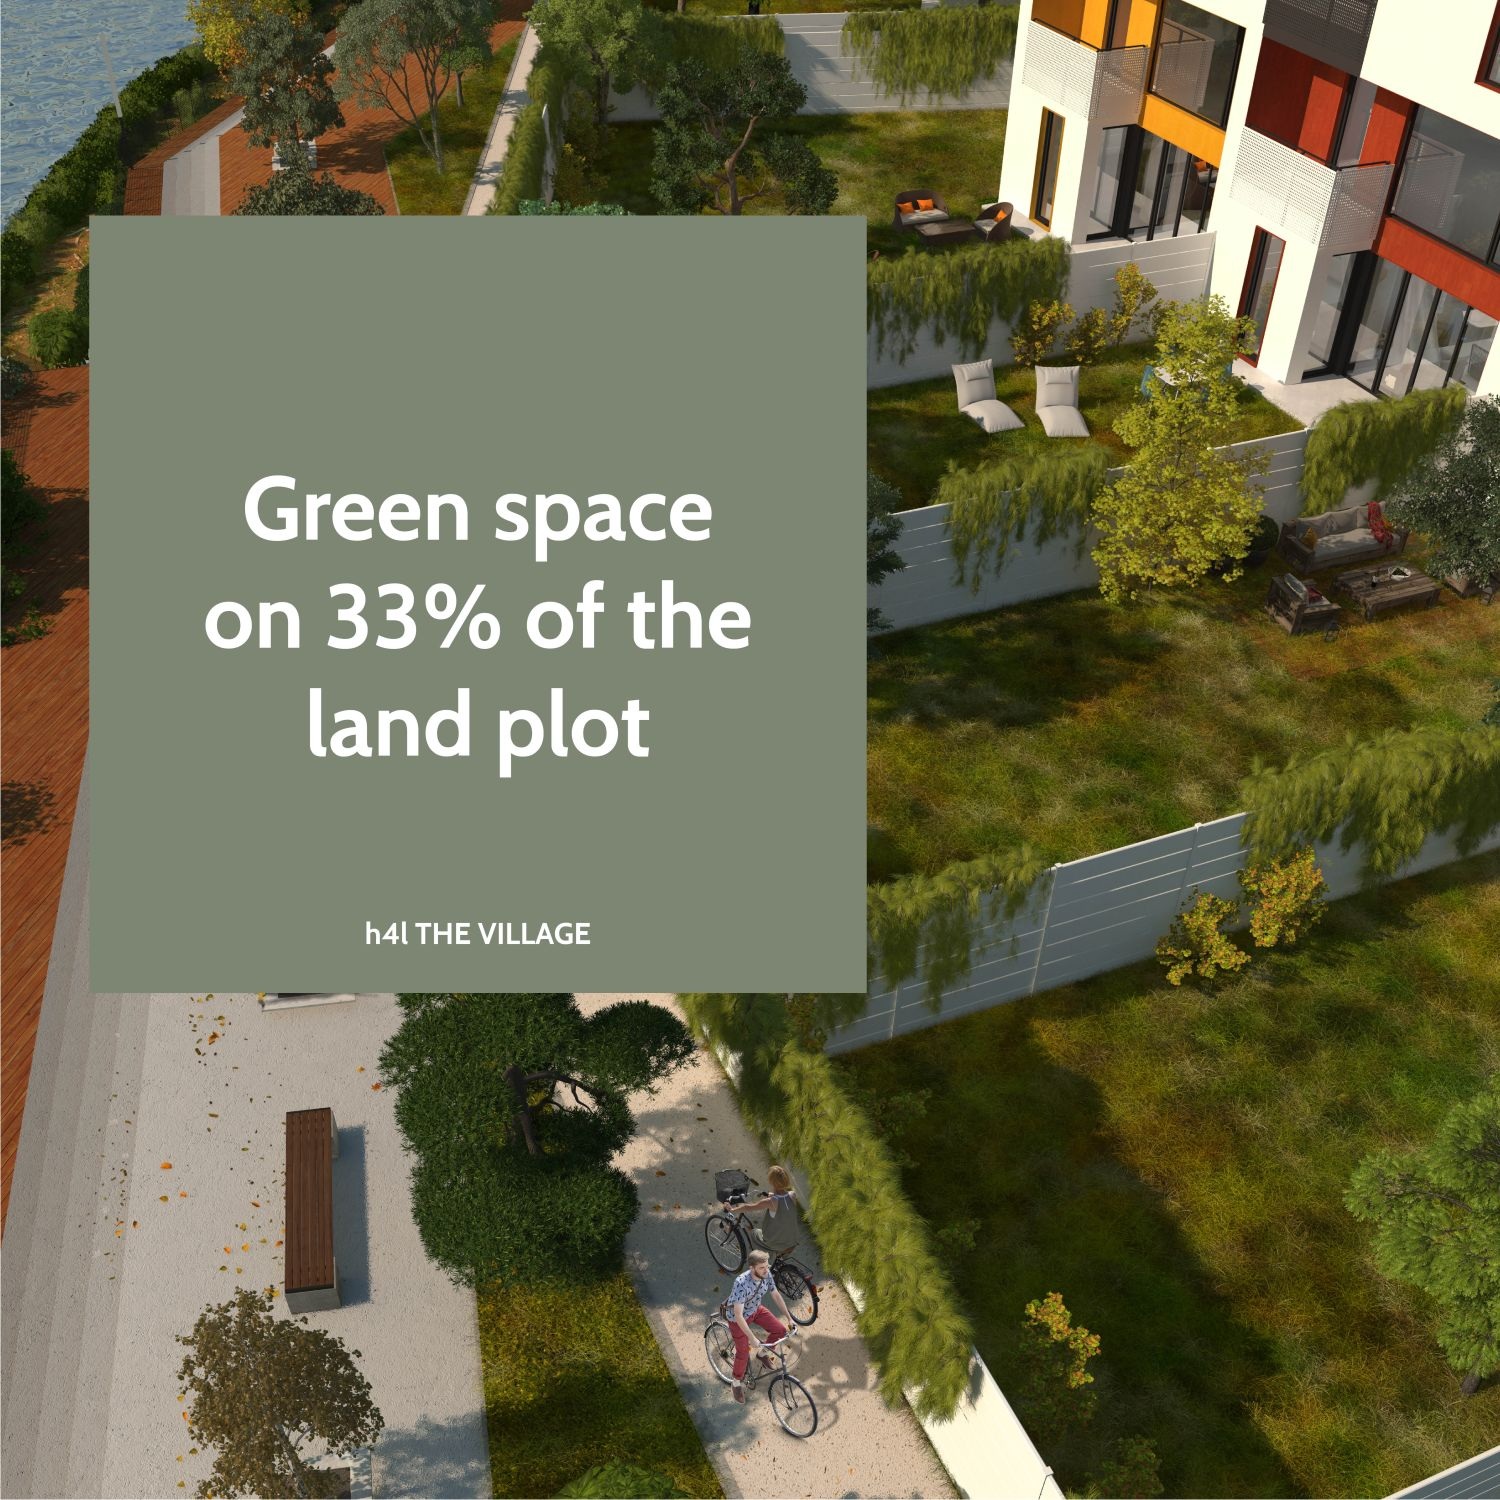 Green space on 33% of the land plot